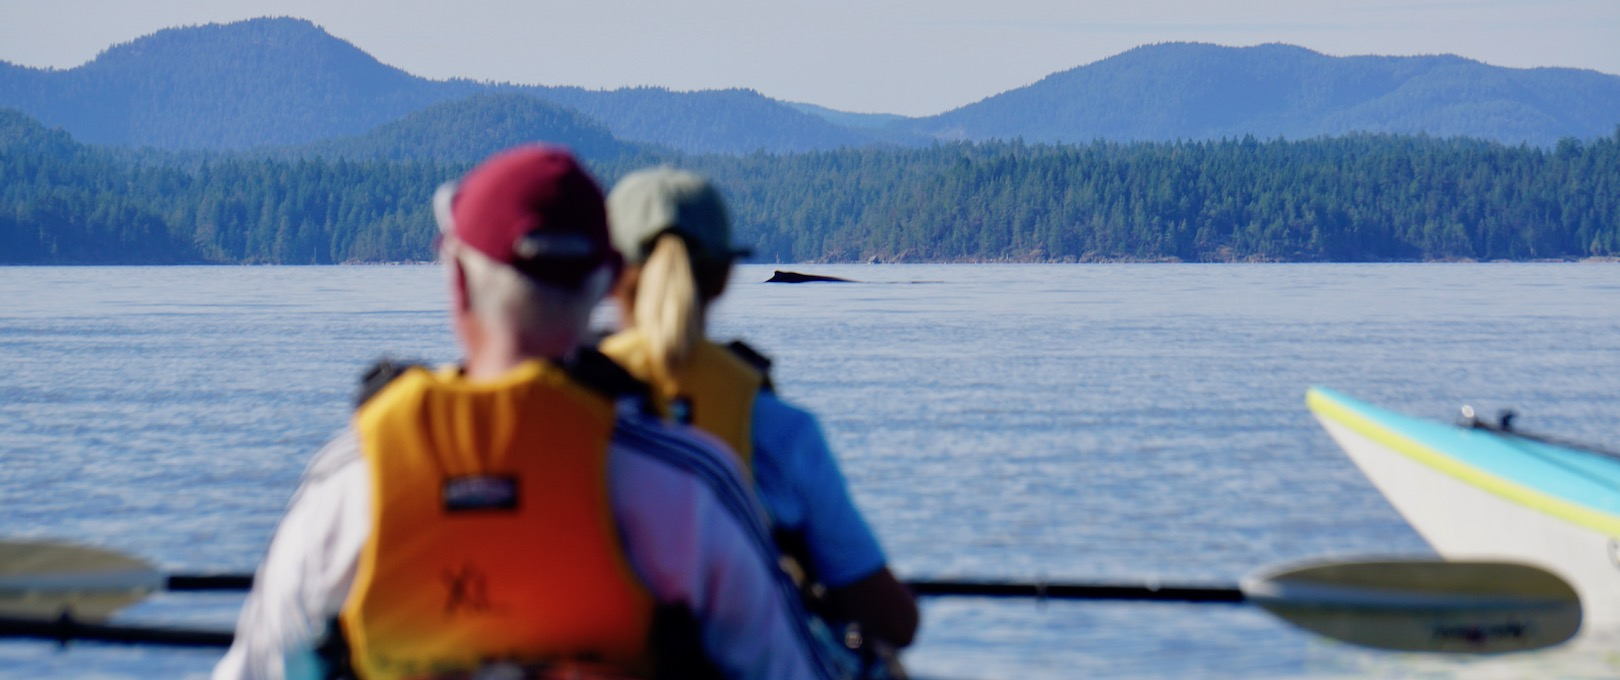 Two kayakers sitting and watching a humpback whale in the distance in Desolation Sound